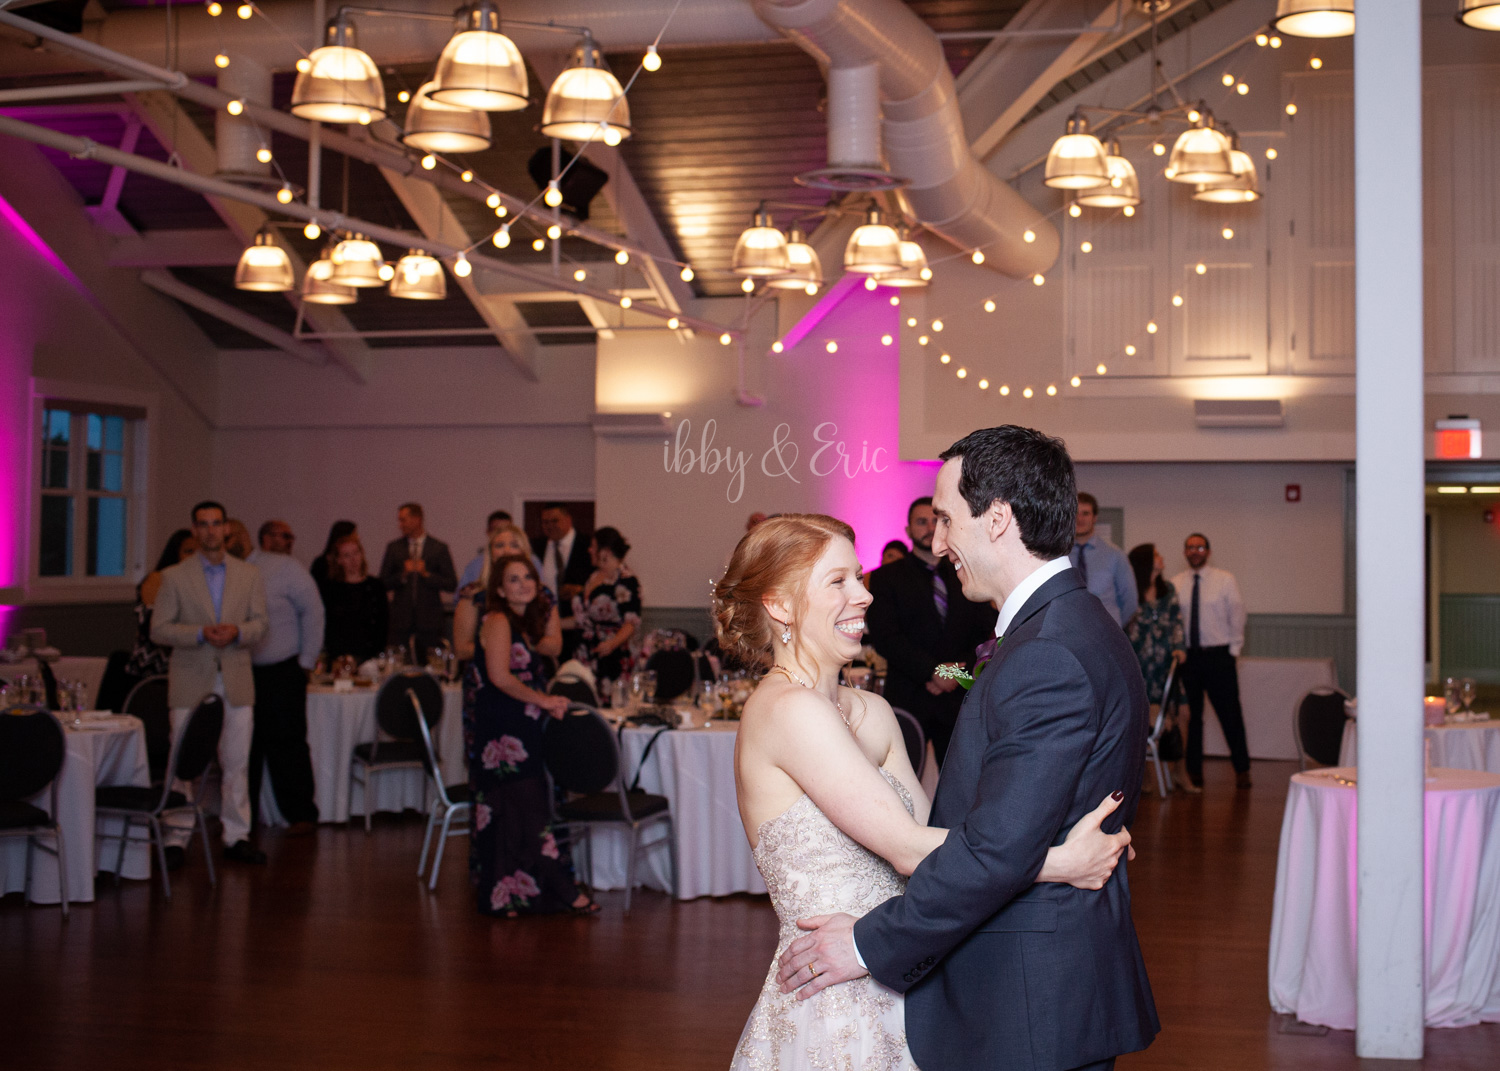 Bride & groom look at each other while hugging during their first dance.